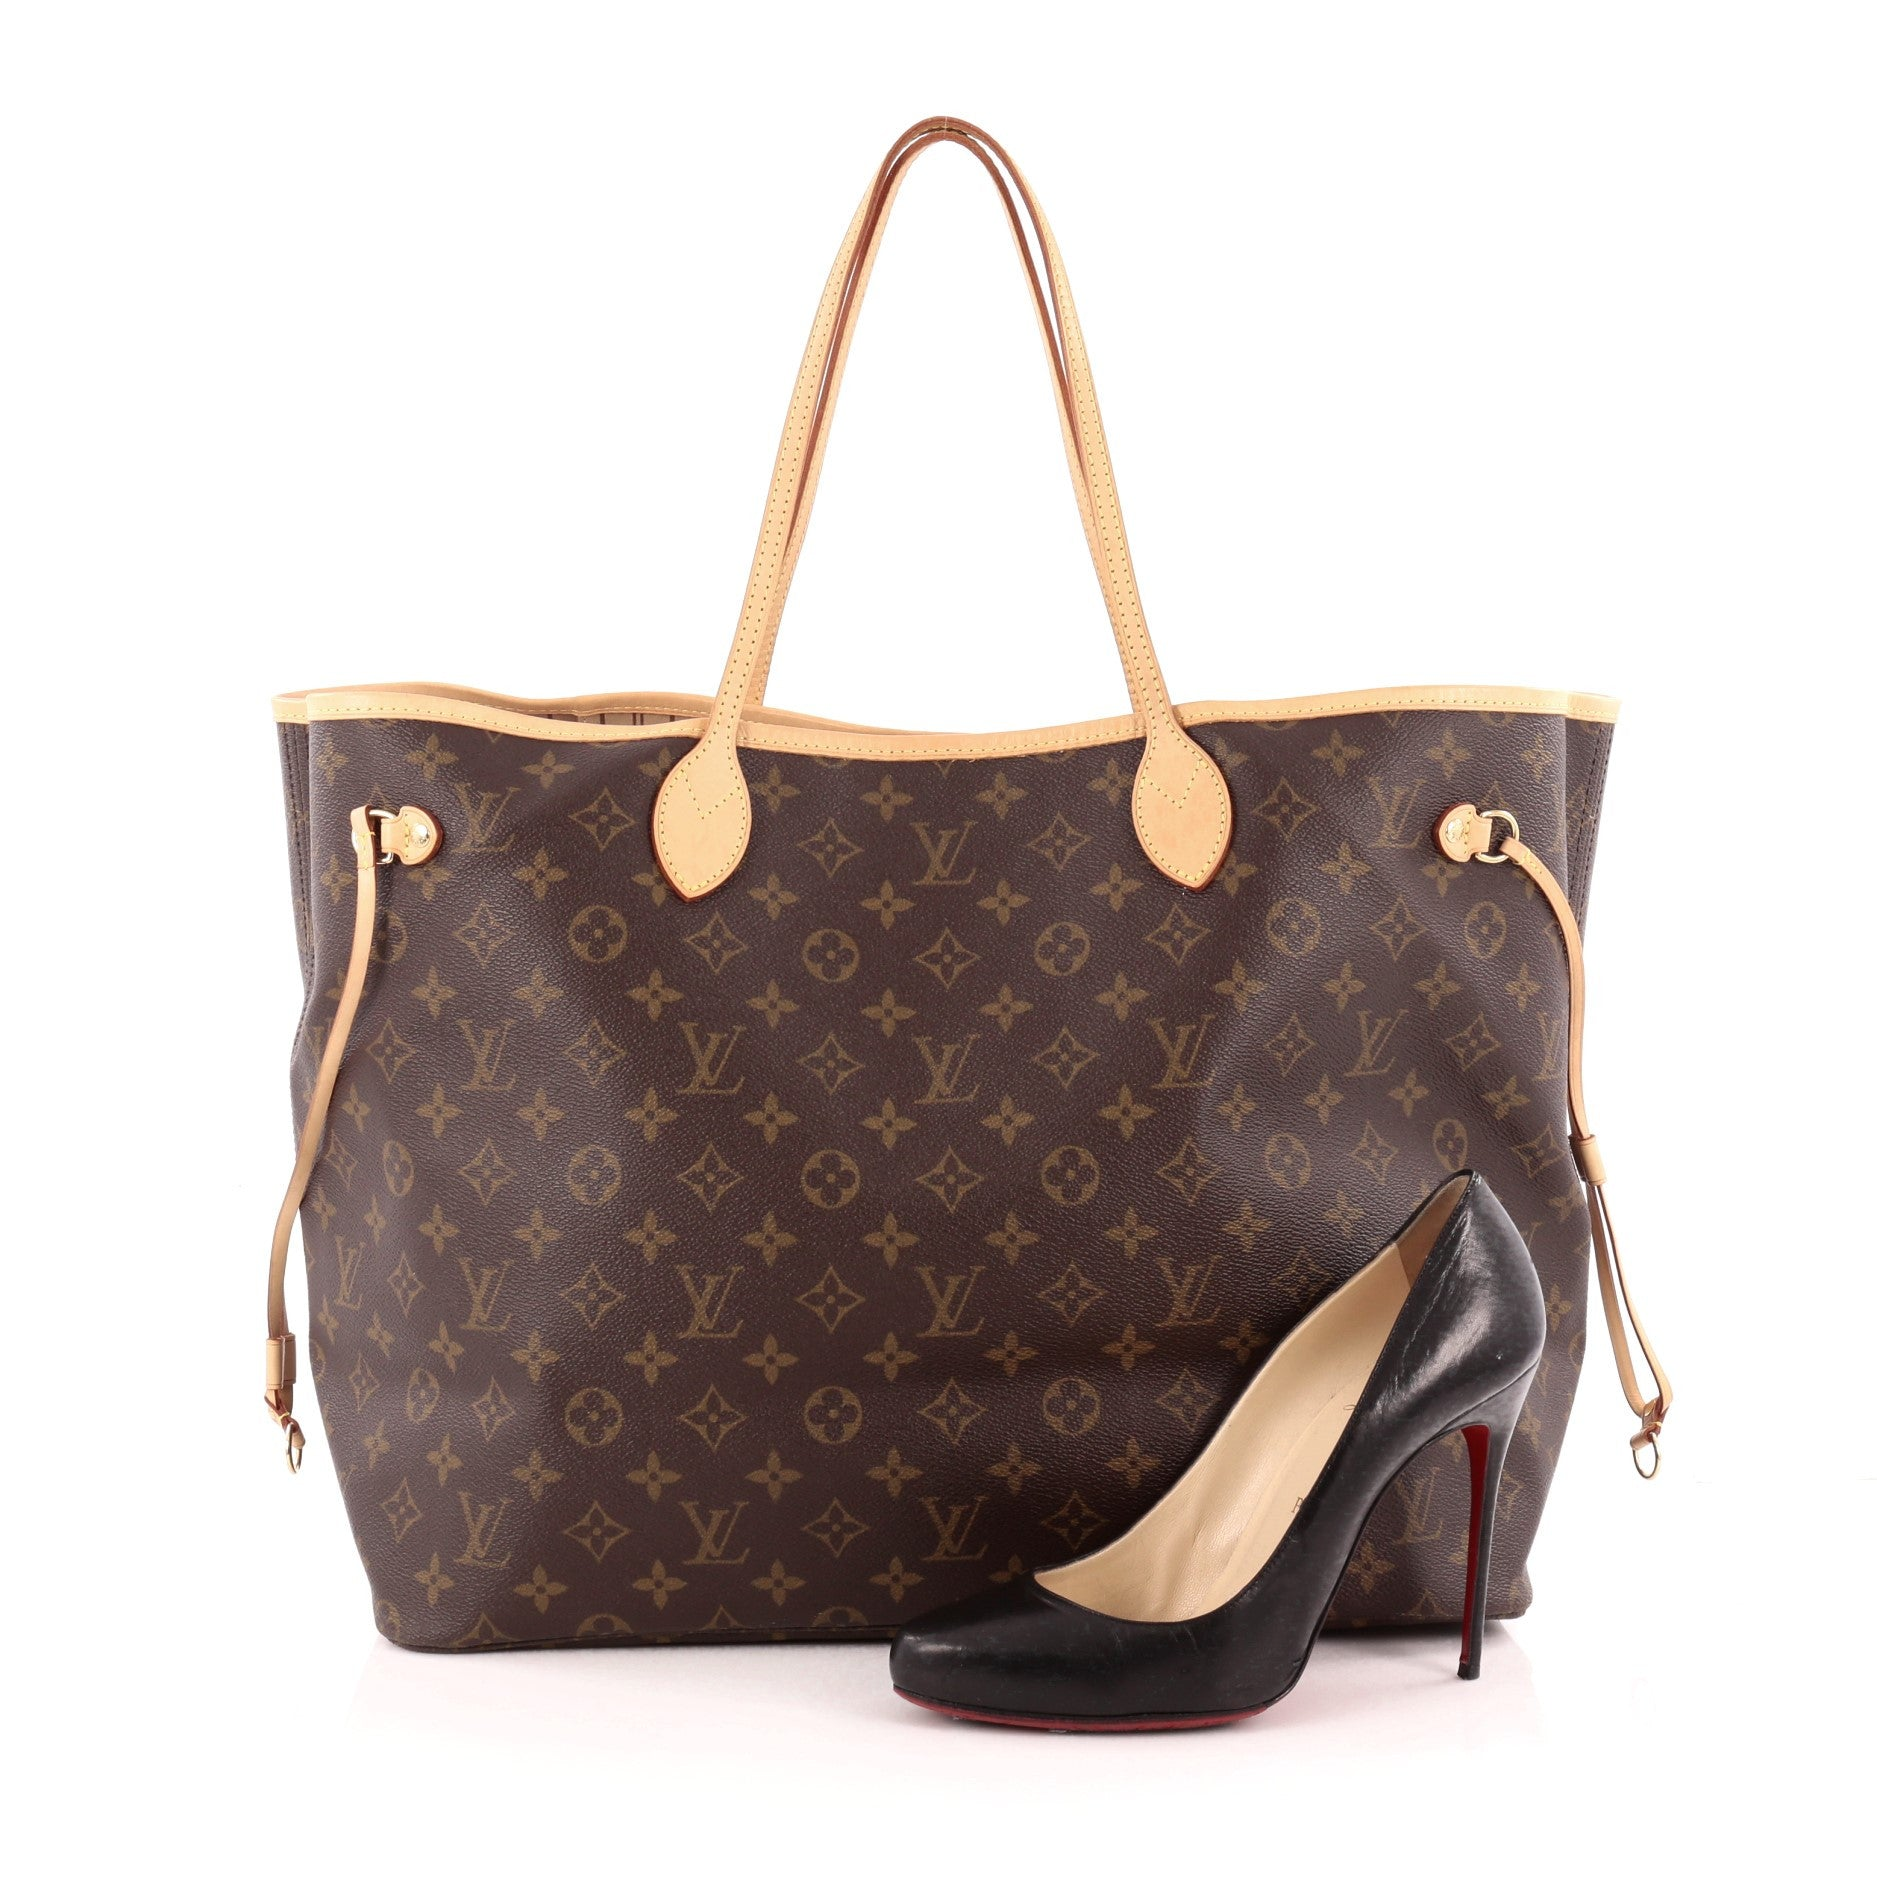 487328762647 Buy Louis Vuitton Neverfull Tote Monogram Canvas GM Brown 1381403 ...